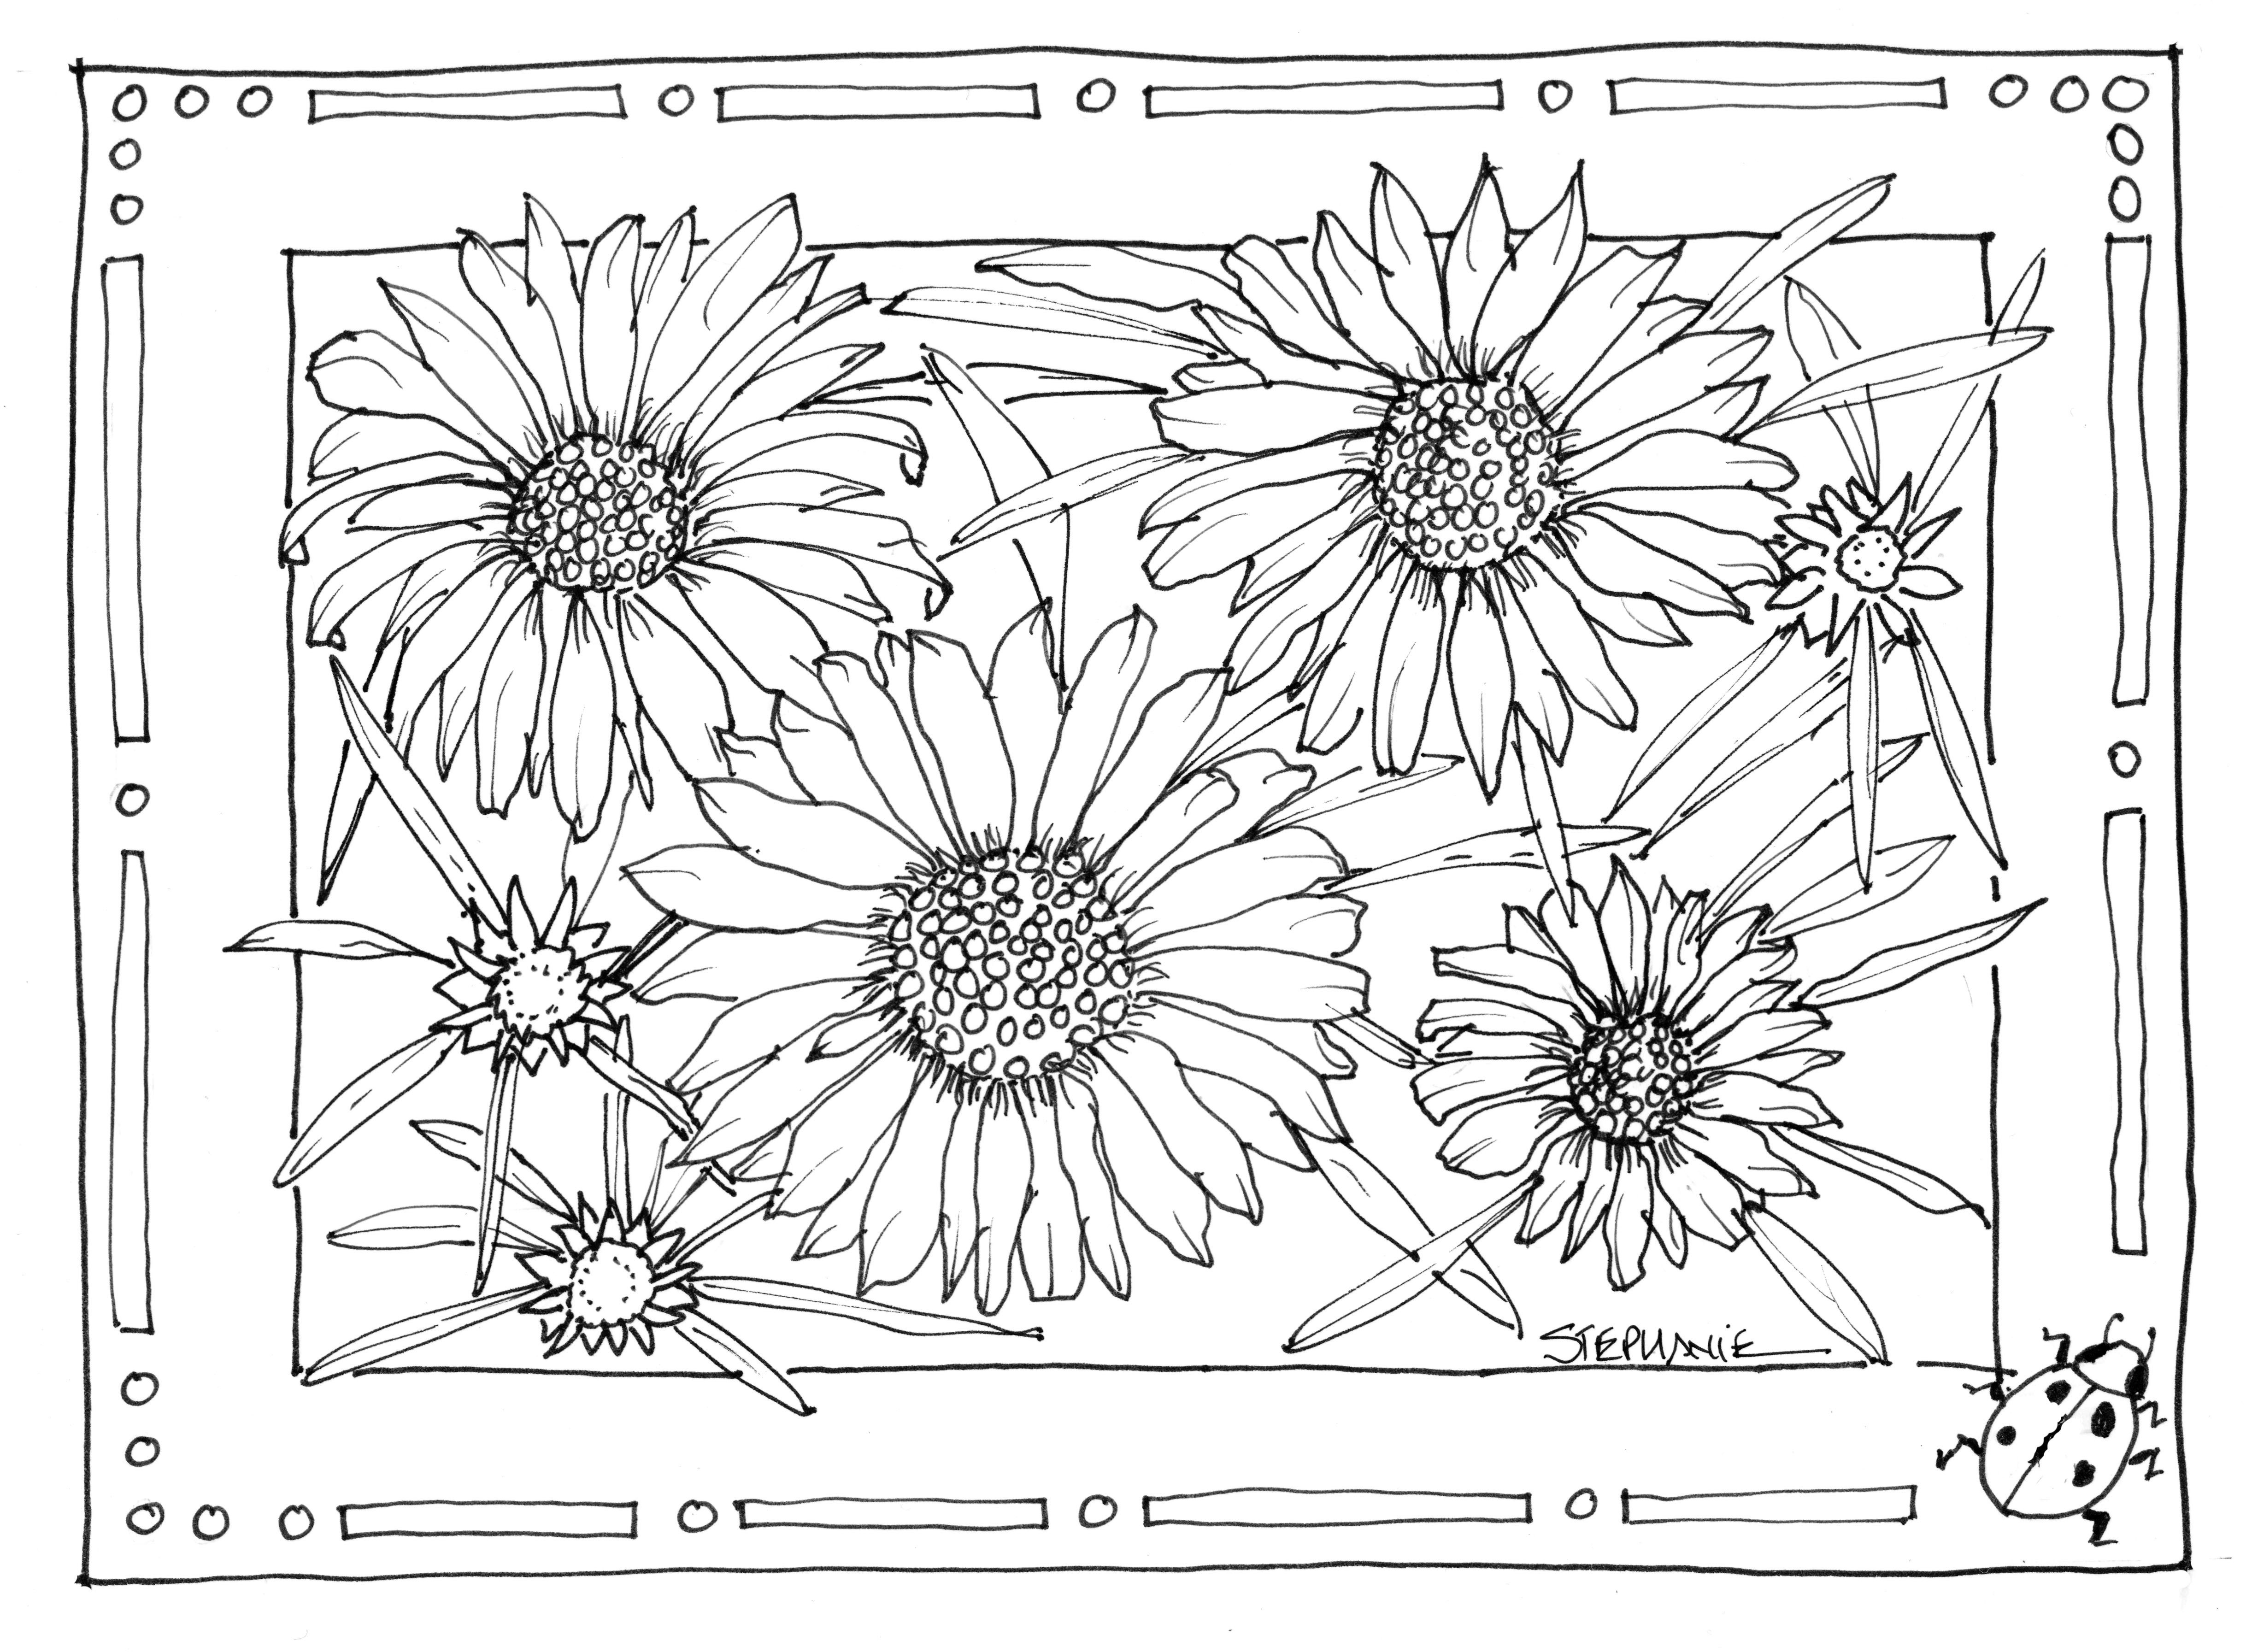 Sunflower Coloring Pages For Adults  Sunflower Coloring Pages Bestofcoloring